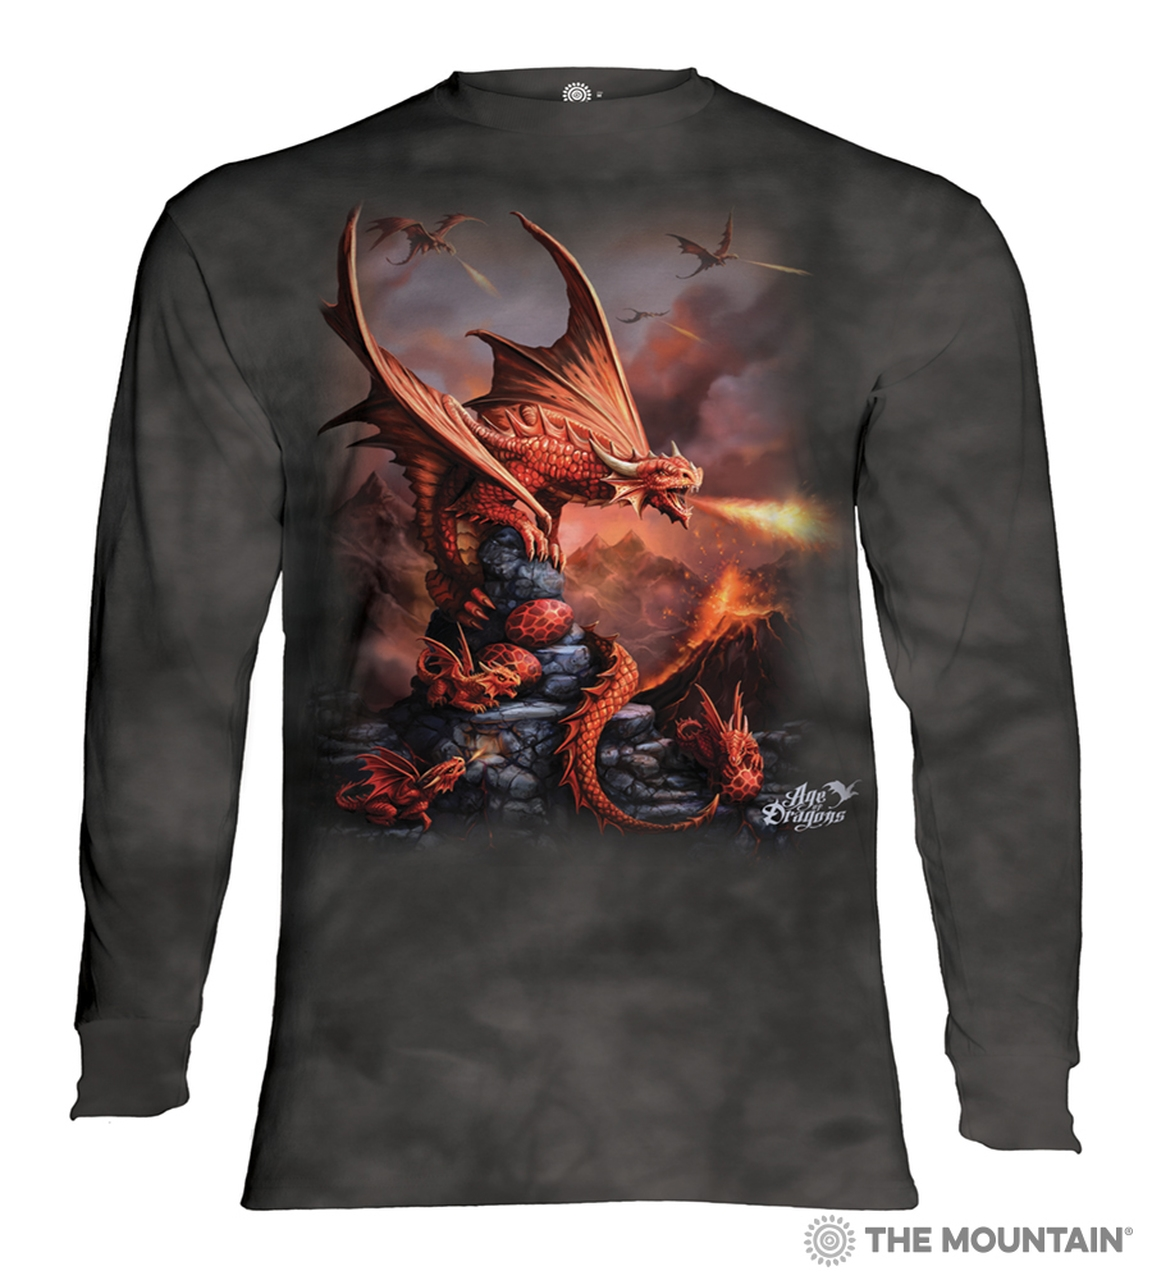 Fire Dragon - 45-5923 - Adult Long Sleeve T-shirt